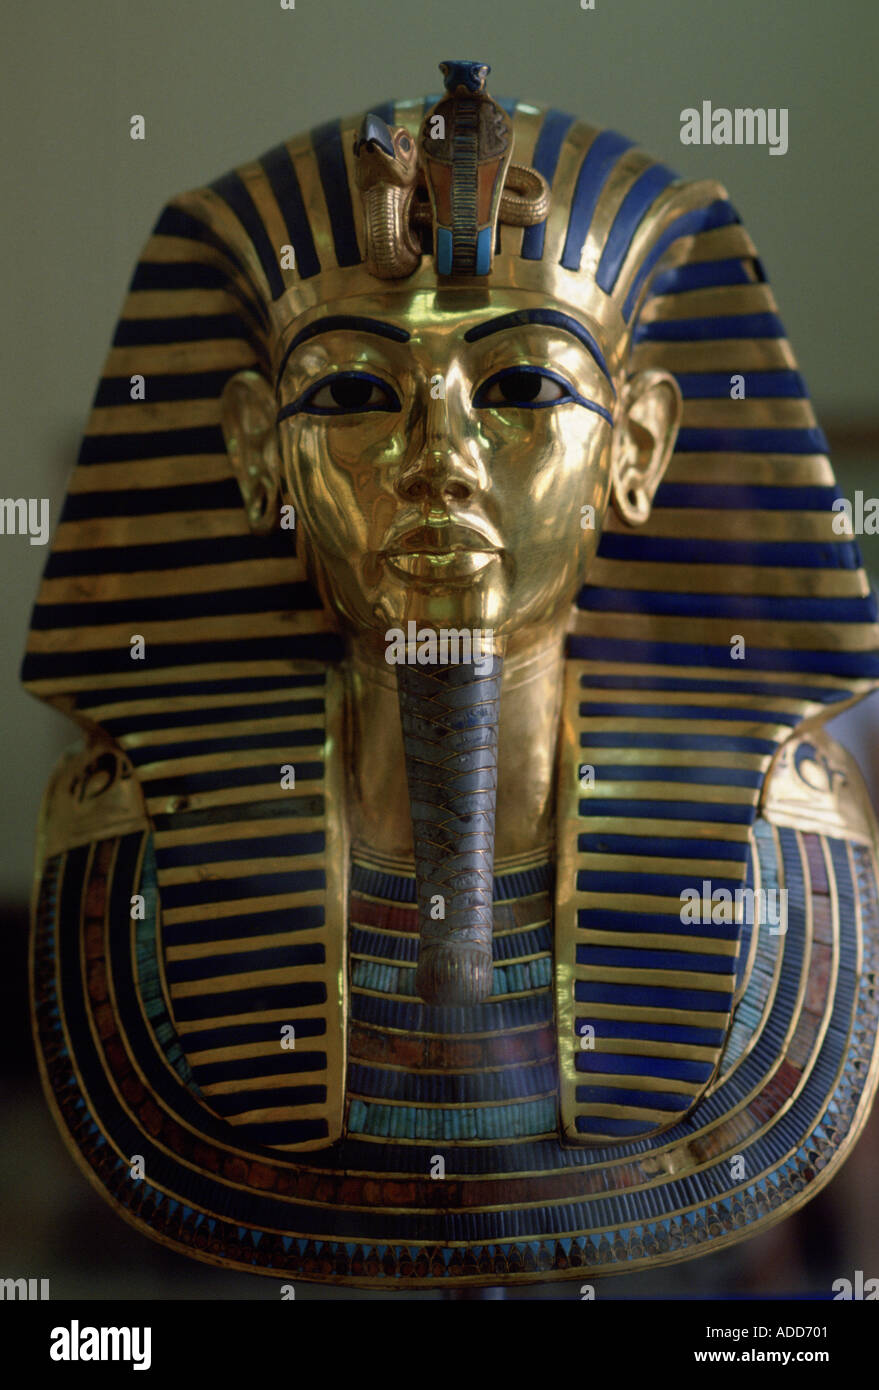 Gold mask of the face of King Tutankhamun in the Cairo Museum in Egypt - Stock Image